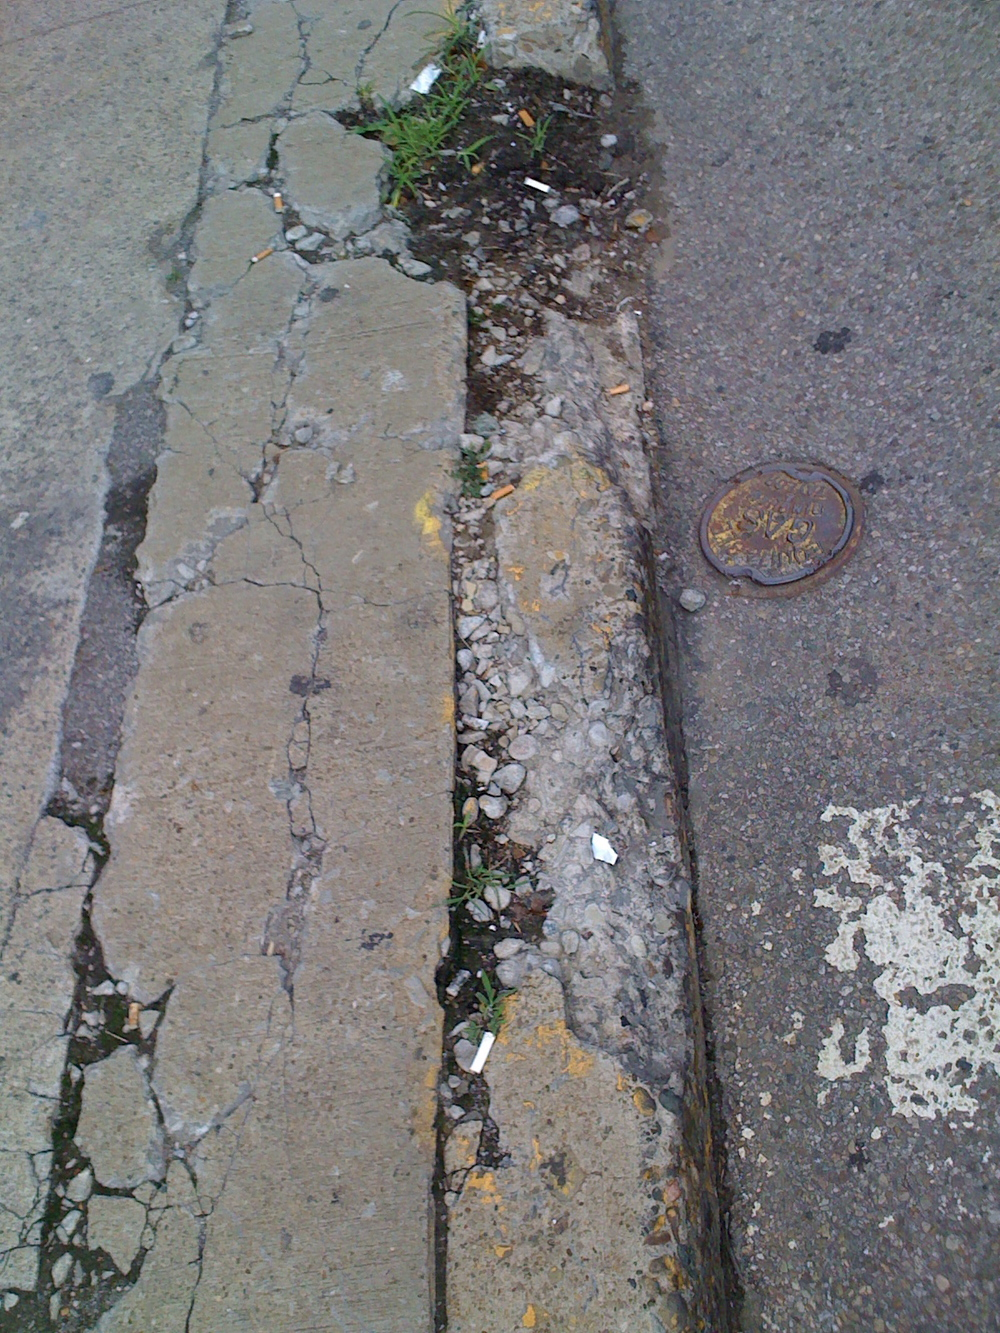 Broken curbs and sidewalks don't make of a pleasant walking experience.